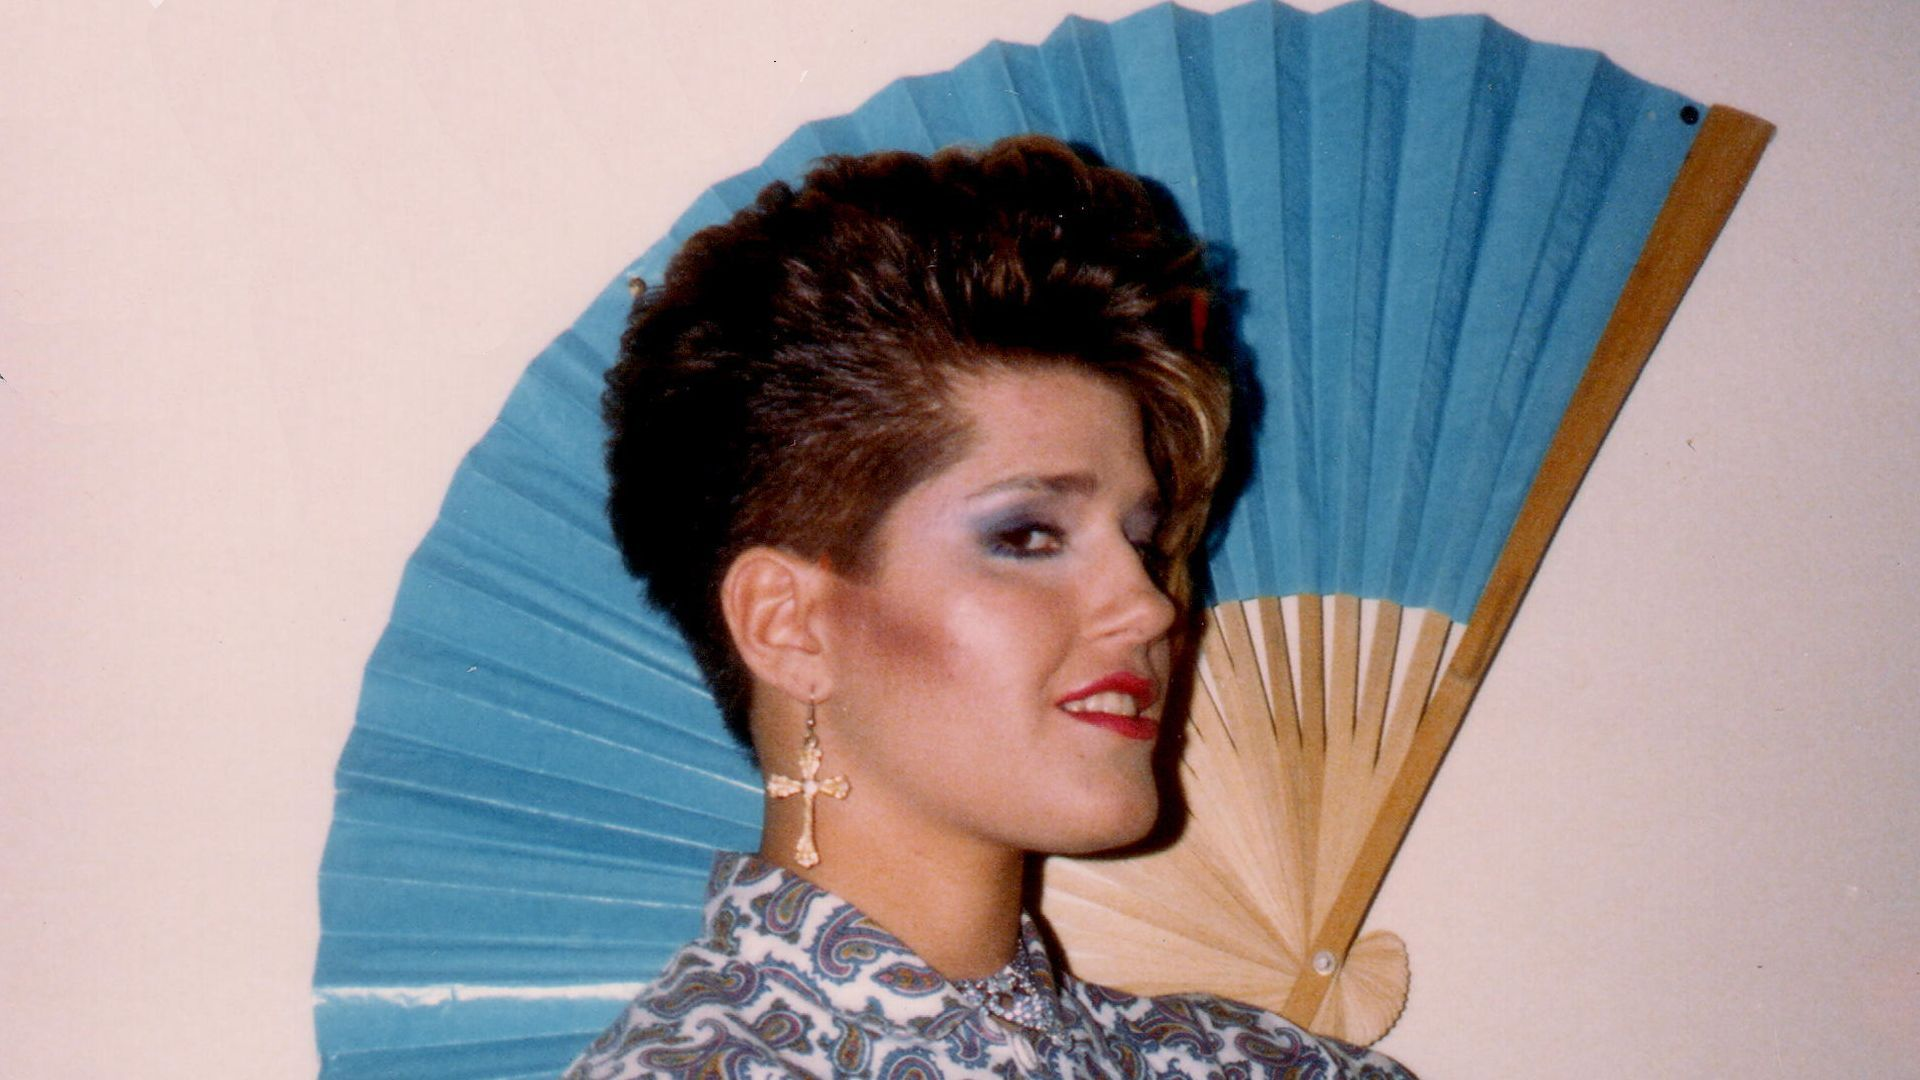 All sizes 80s Hair Flickr Sharing